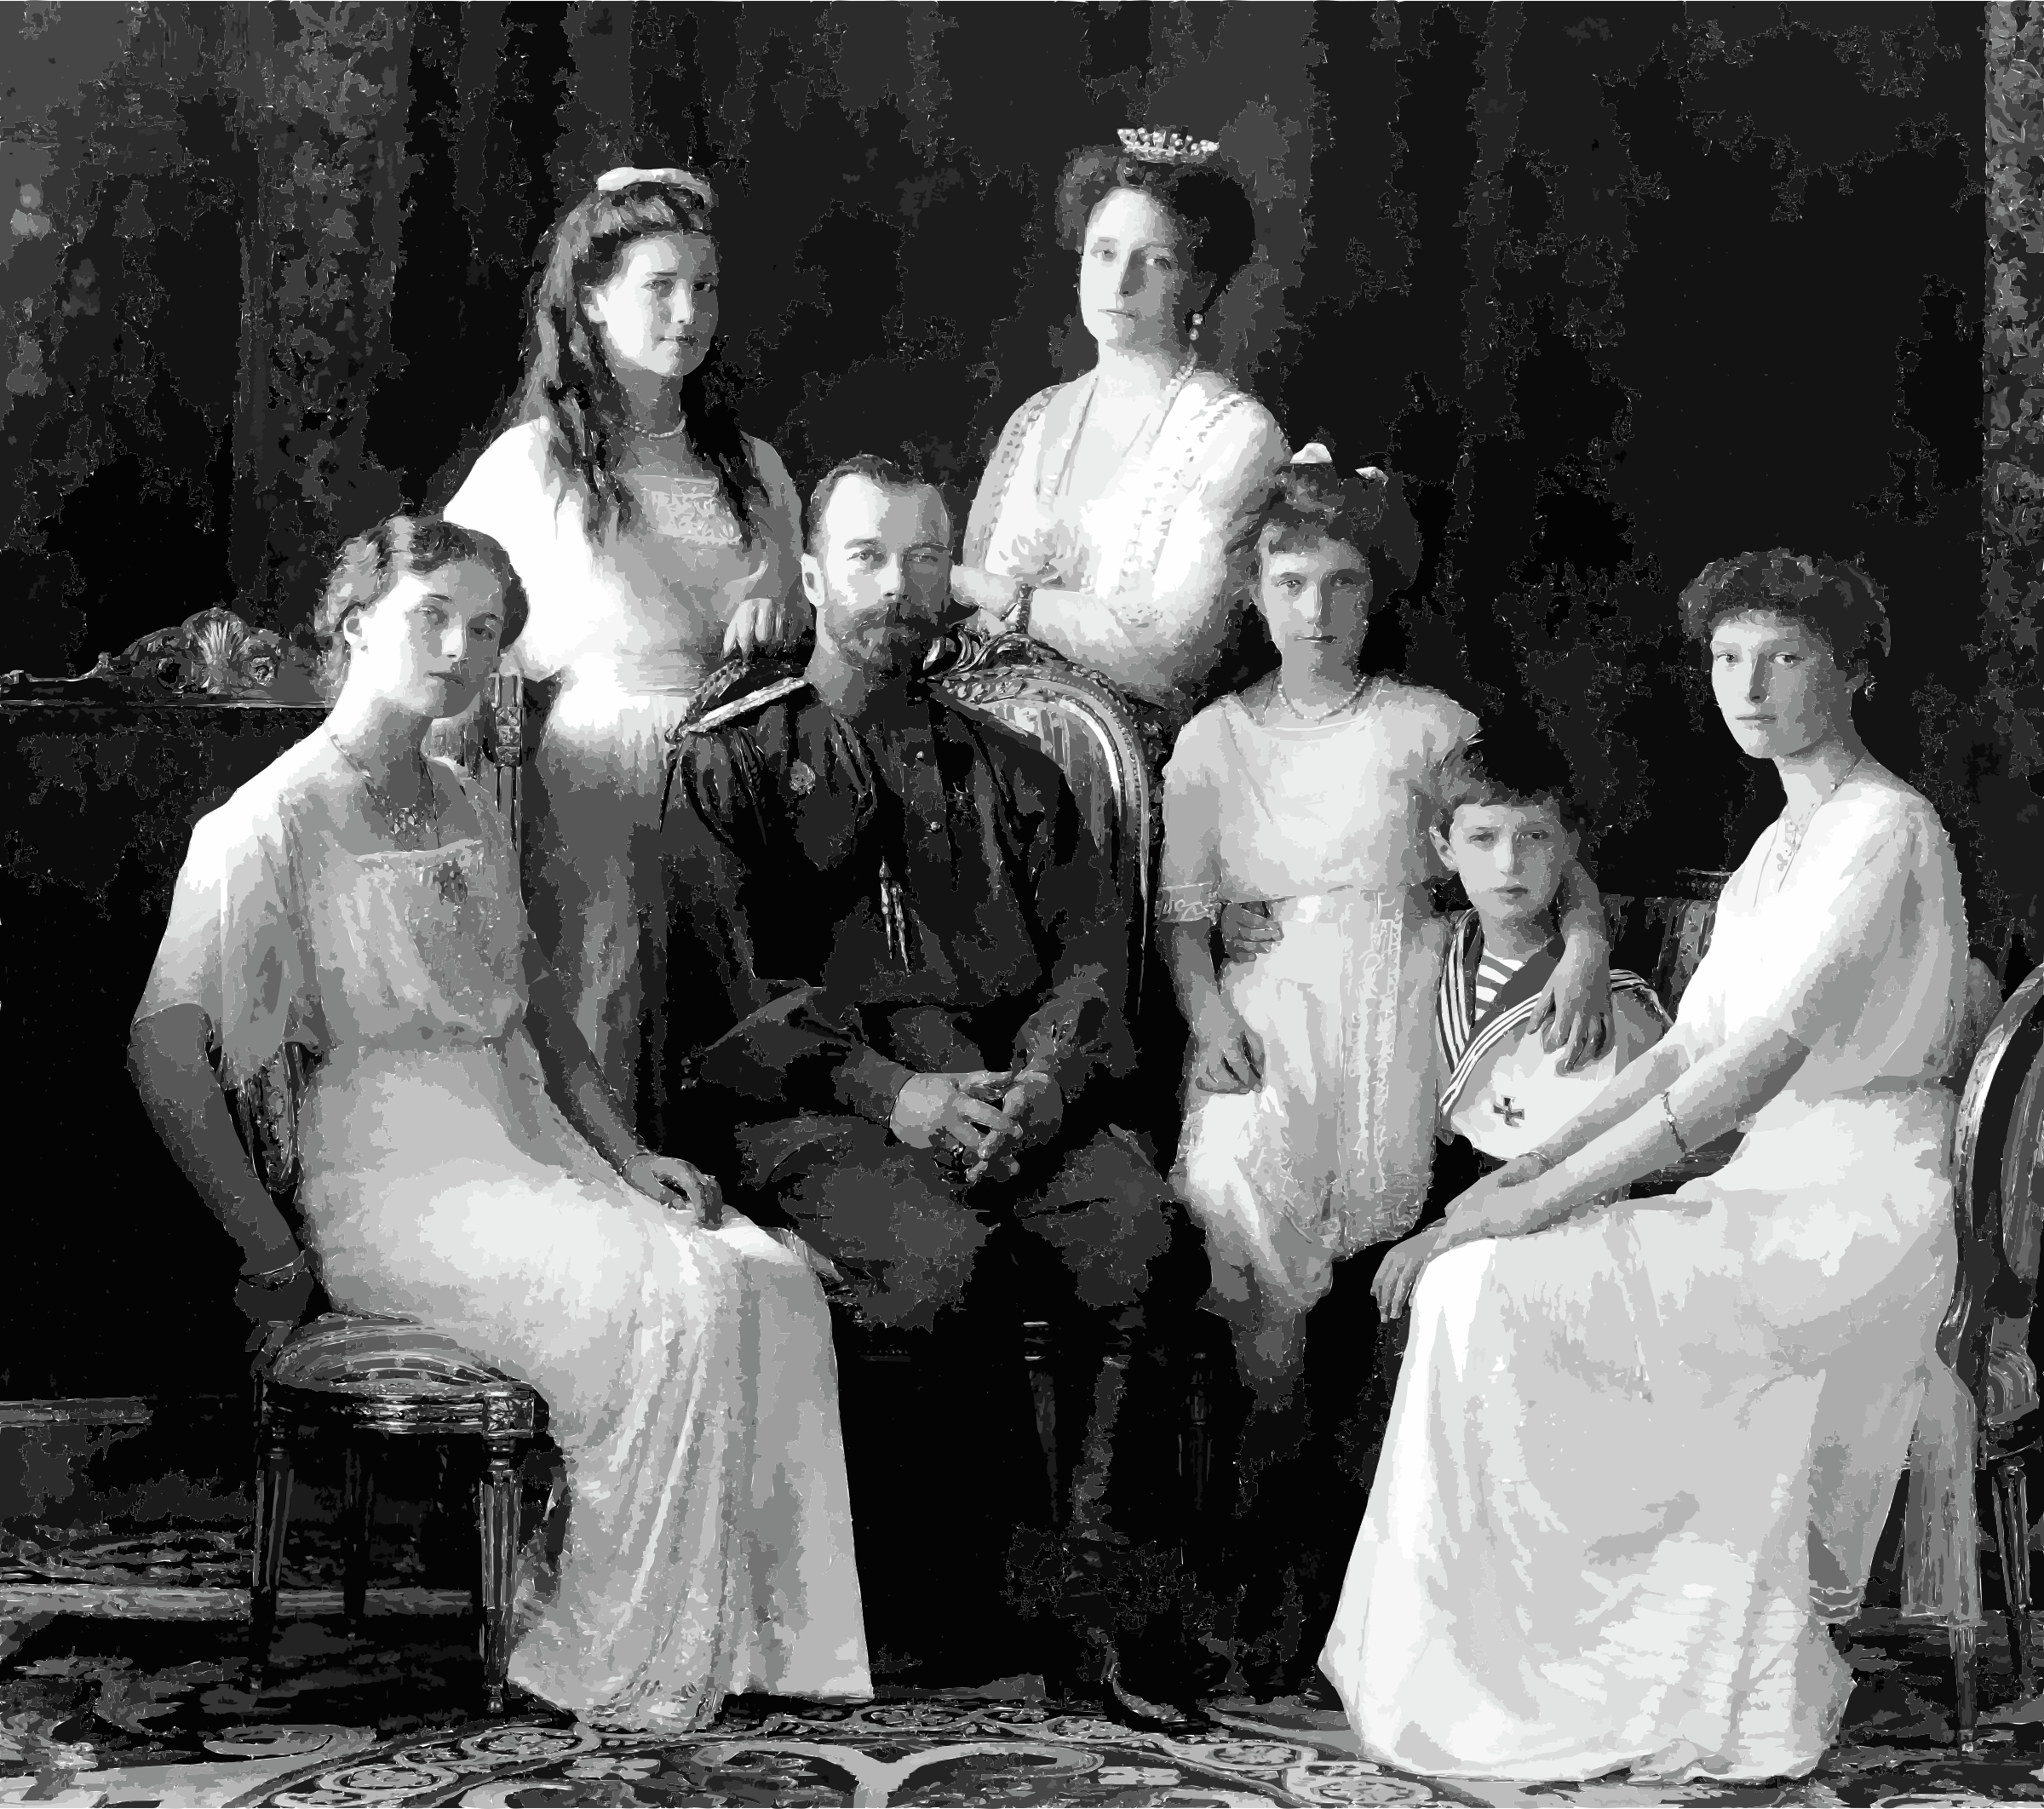 Russian Imperial Family 1911 by 5nbz3a+45jqtl07aorc